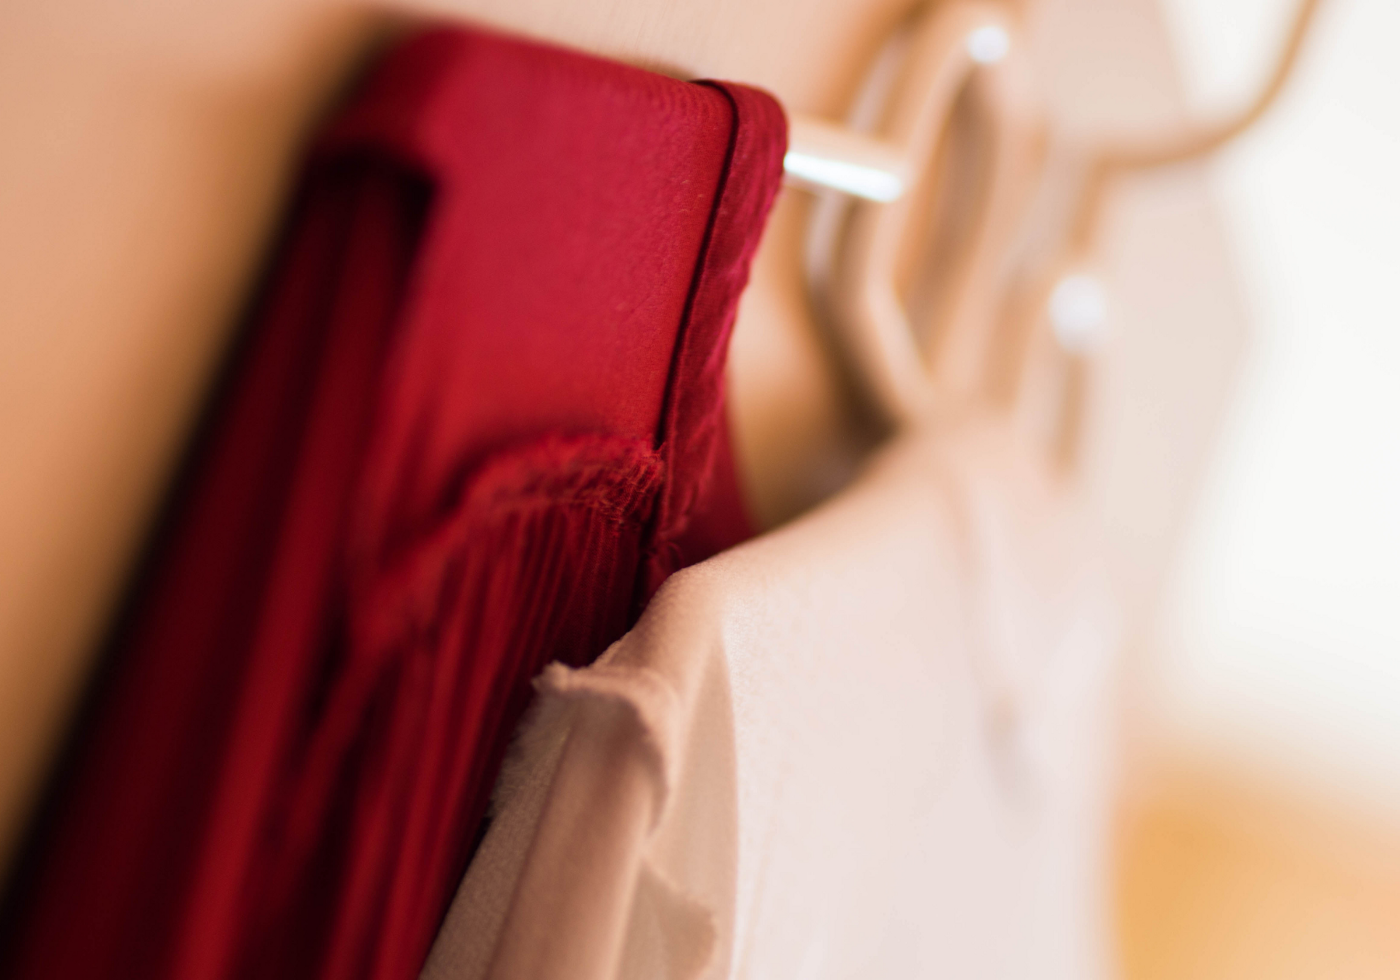 A red garment and a white garment hang against a wall.